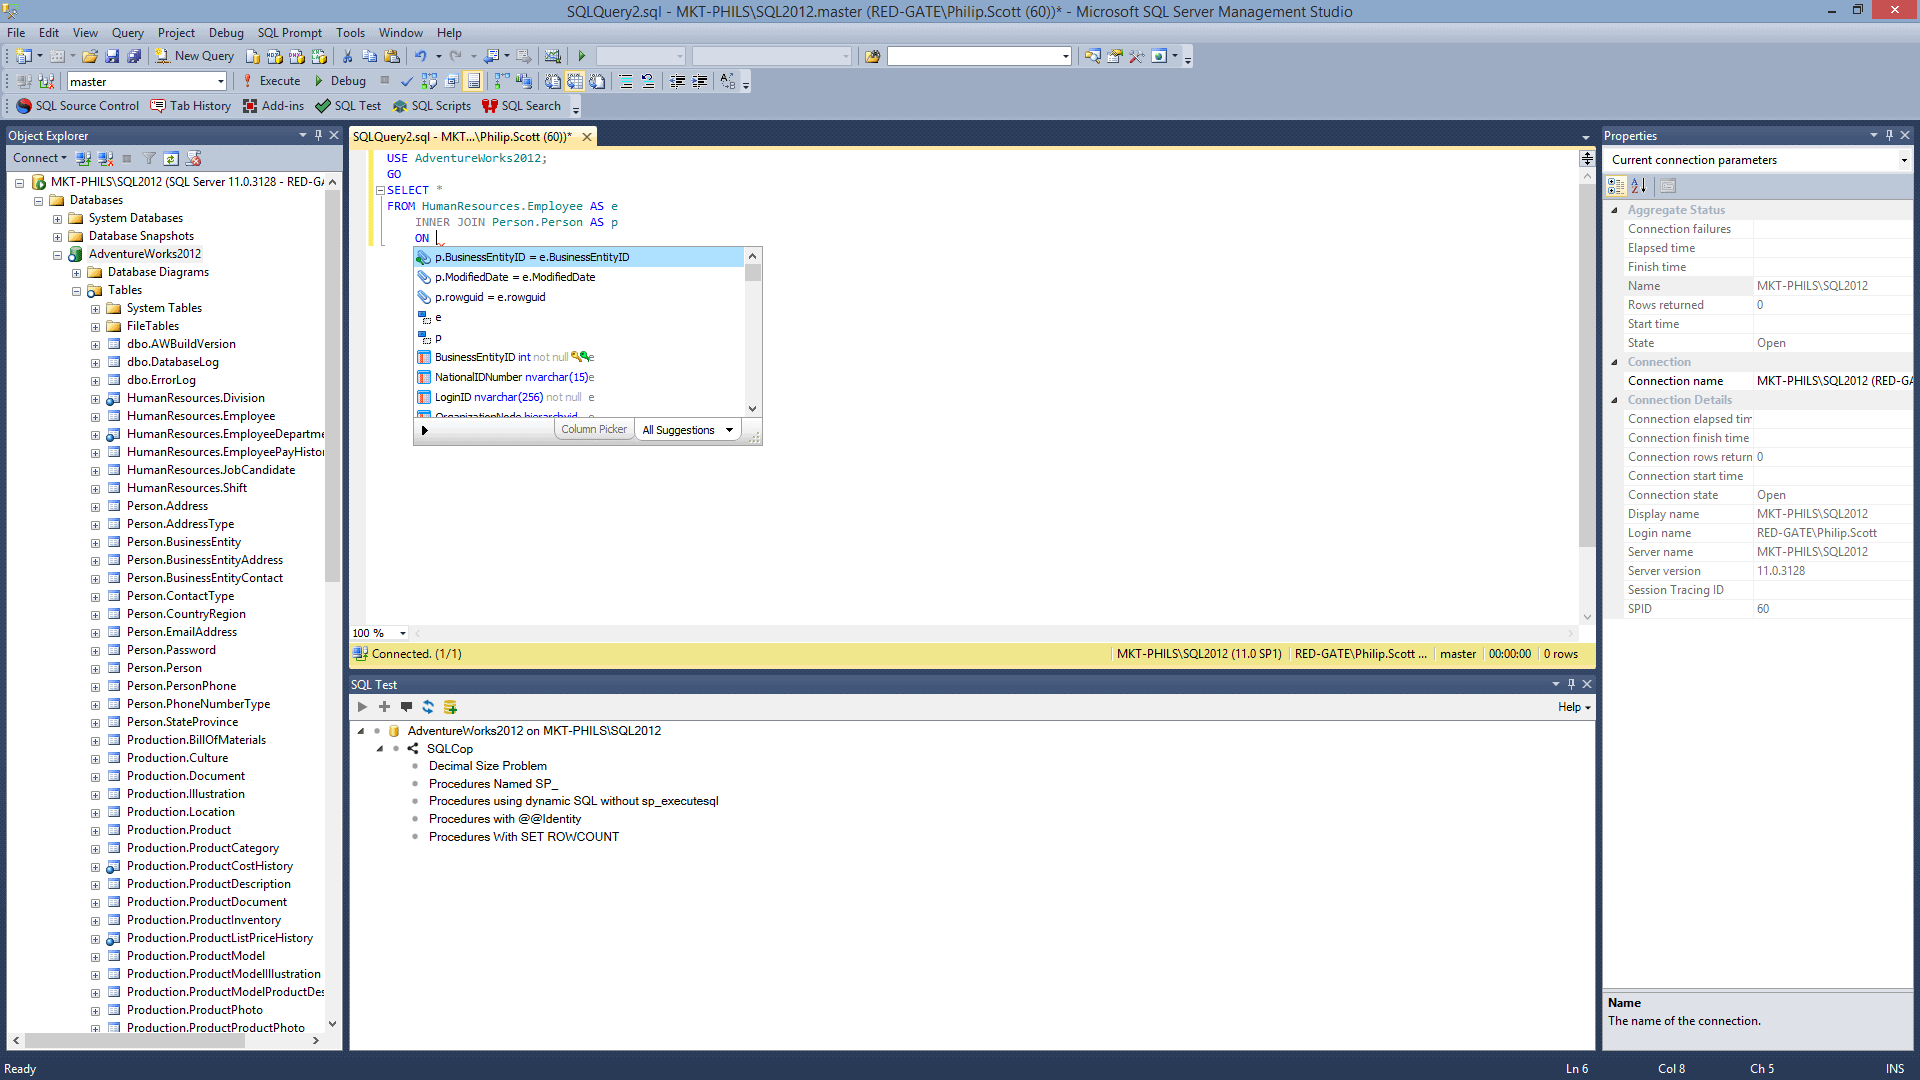 Customizing the SQLprompt